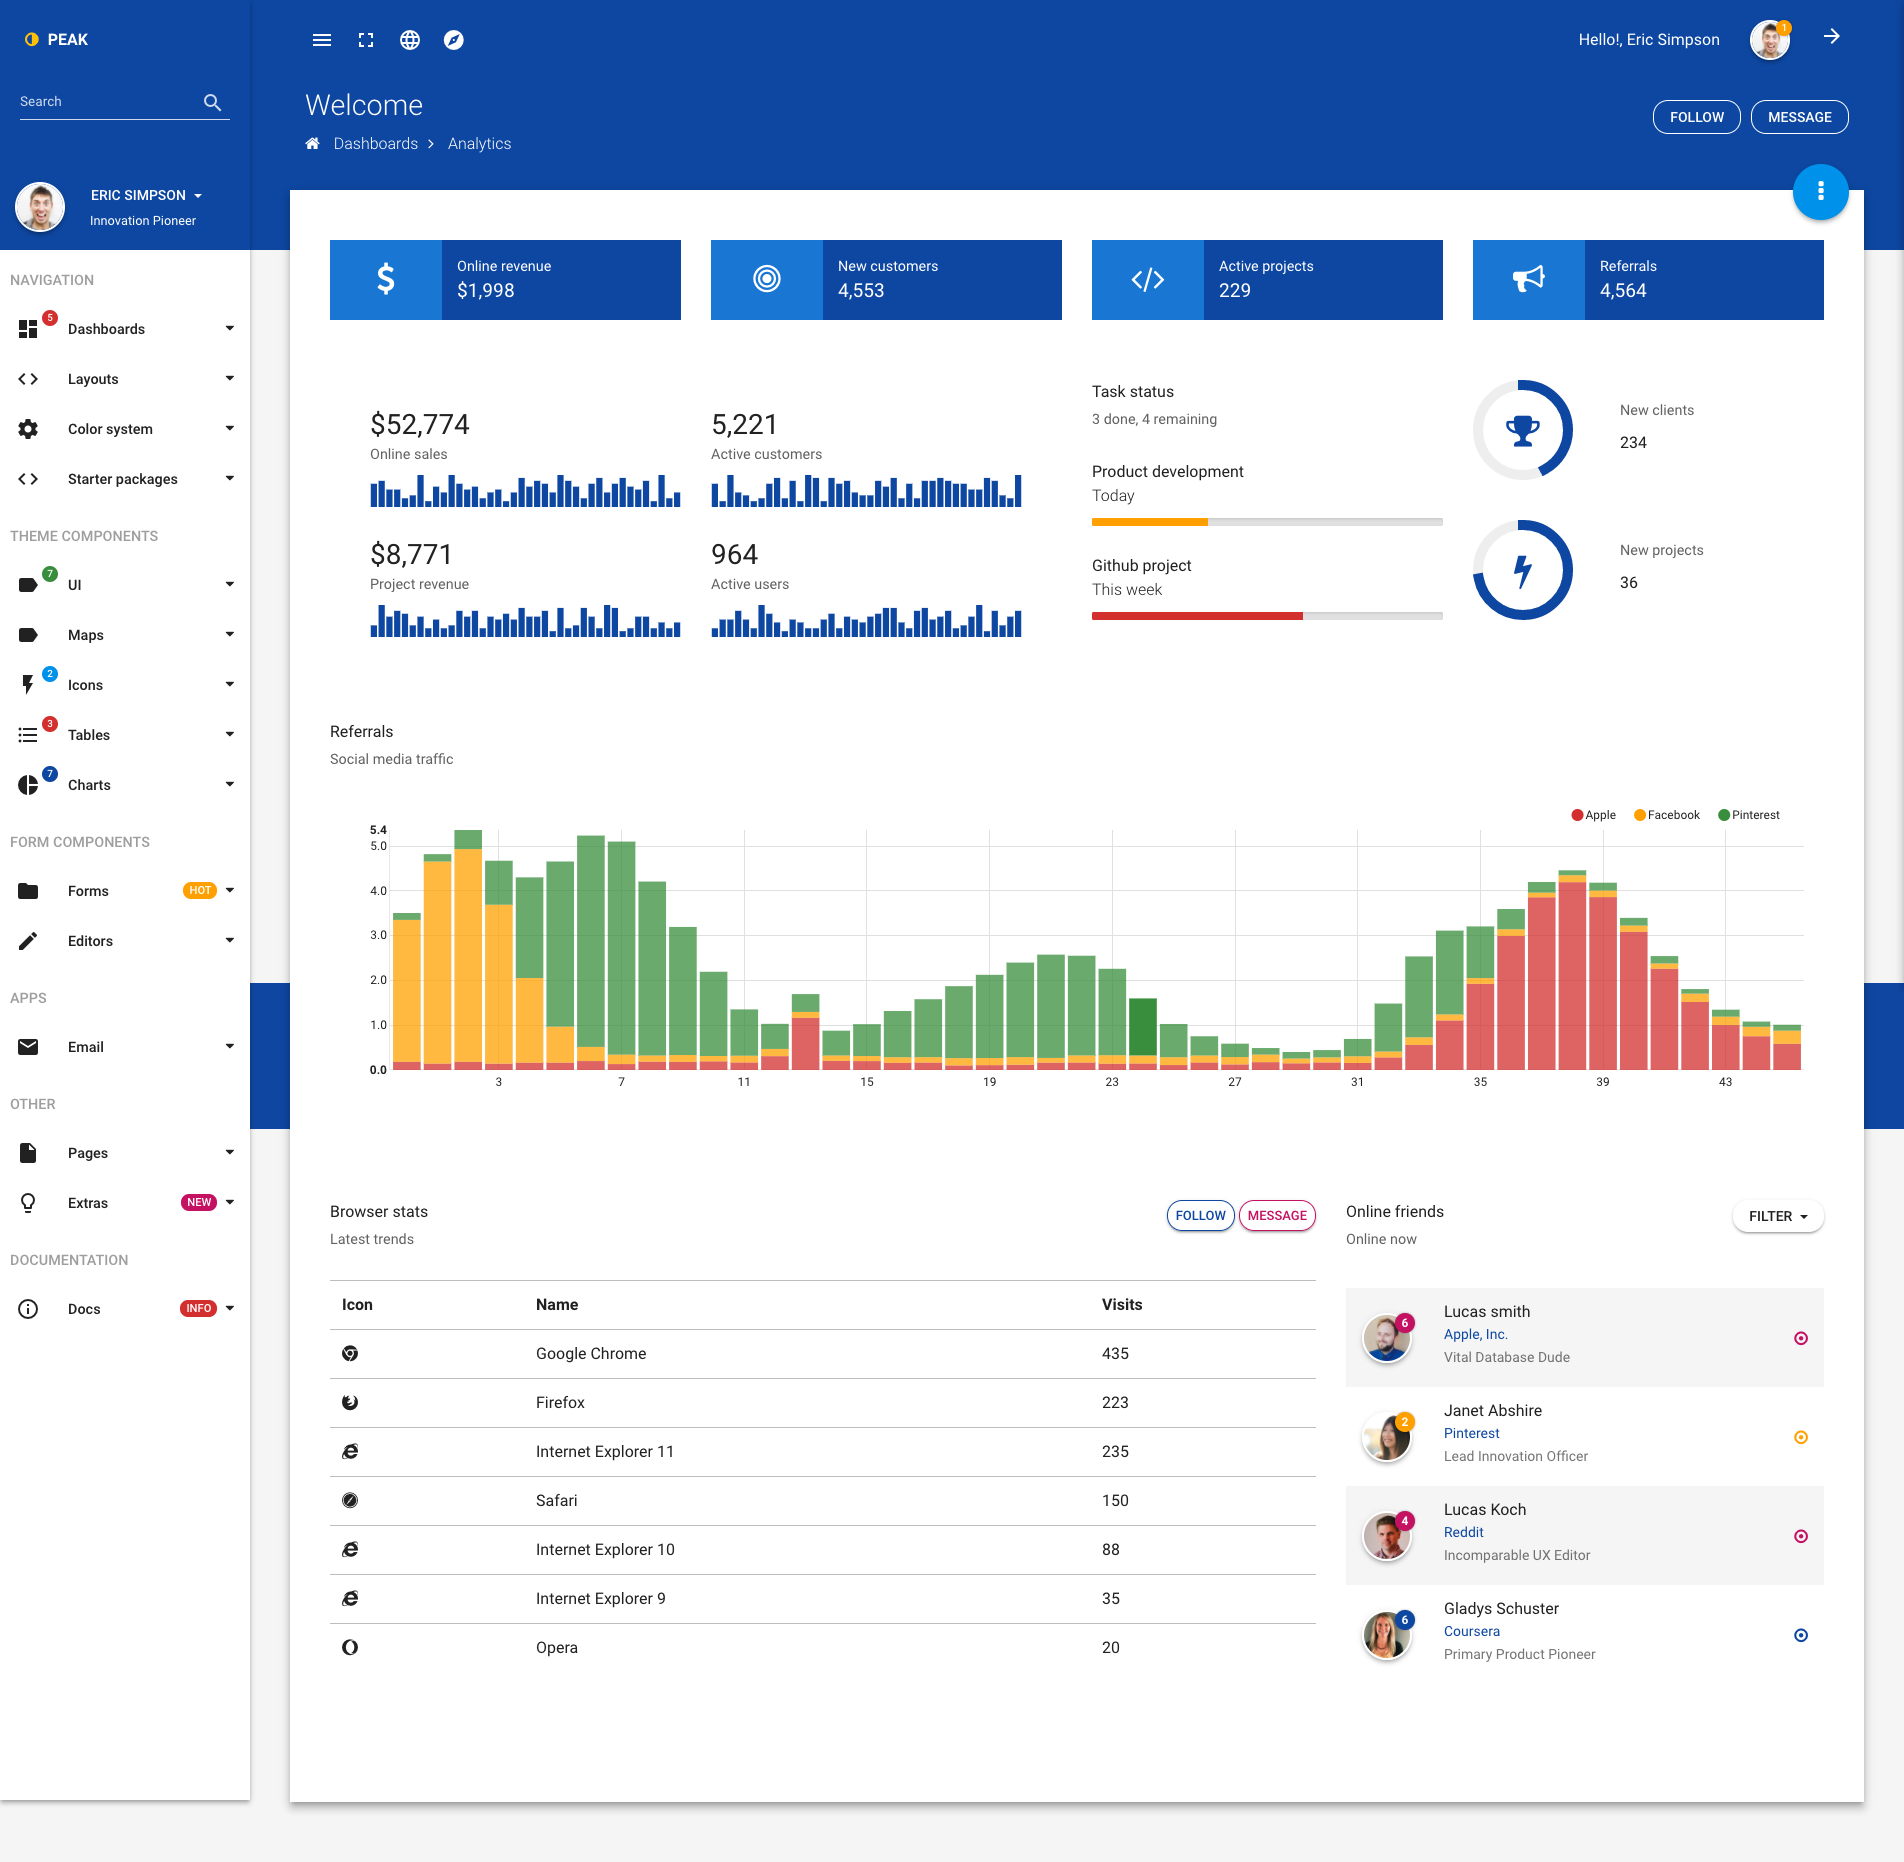 Peak - Material design Bootstrap 4 admin template by